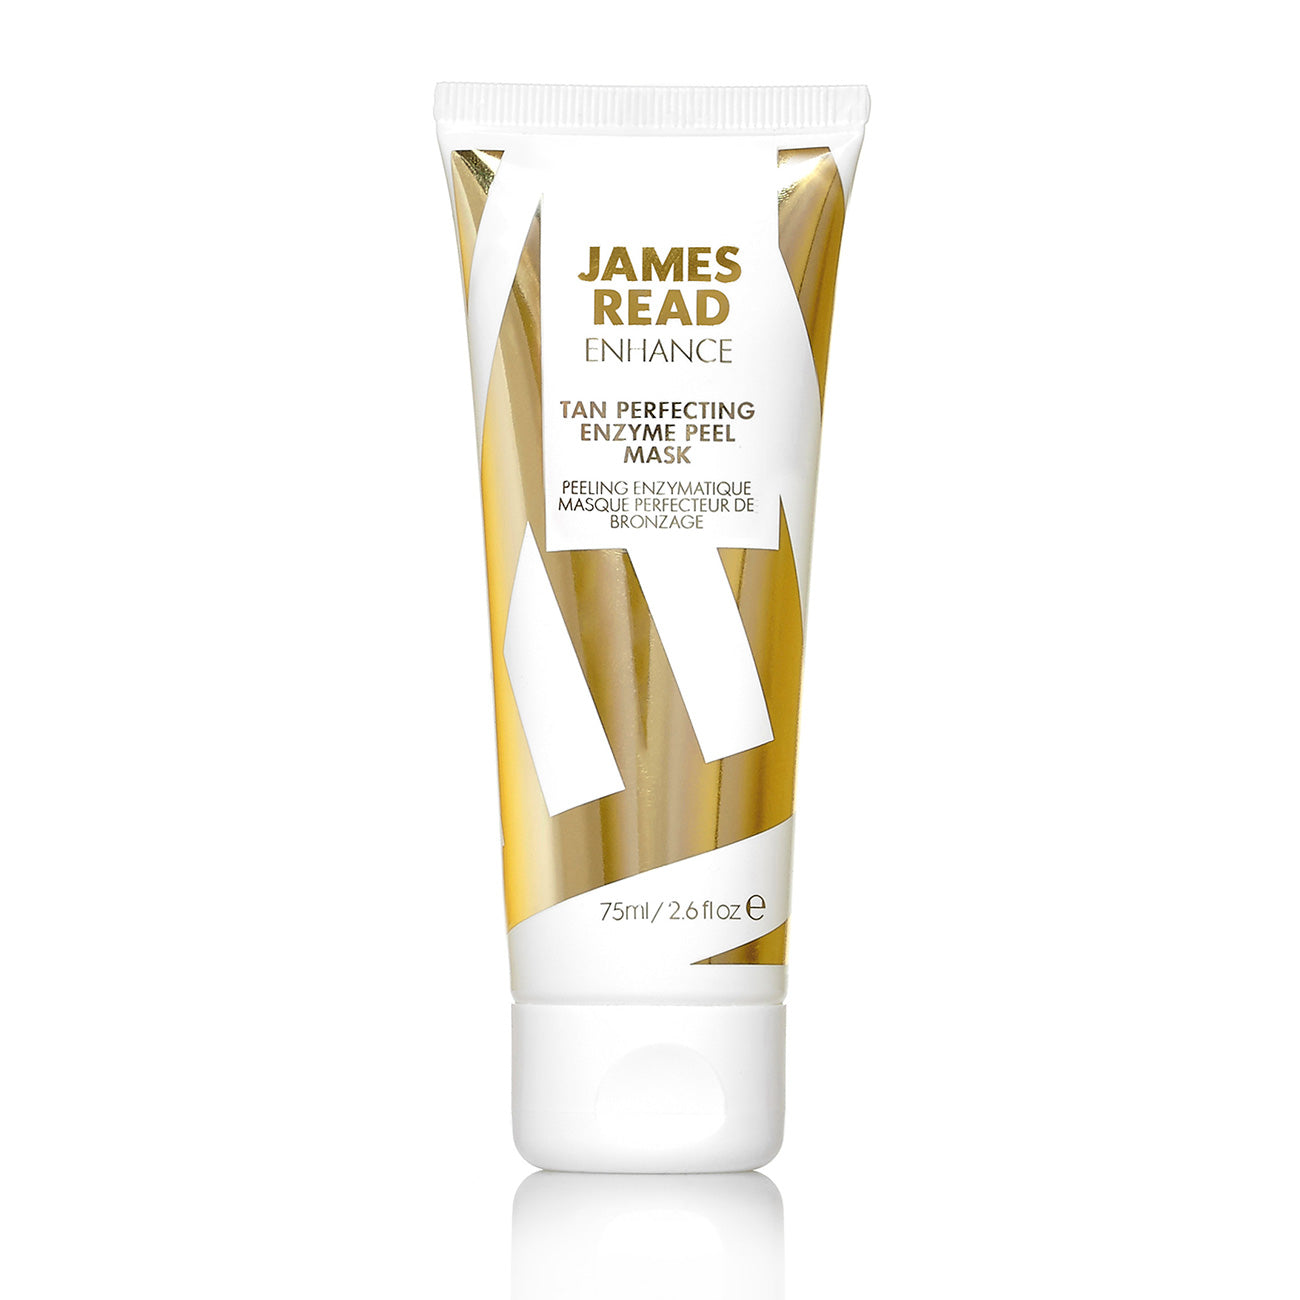 James Read Tan Perfecting Enzyme Peel Mask 50ml